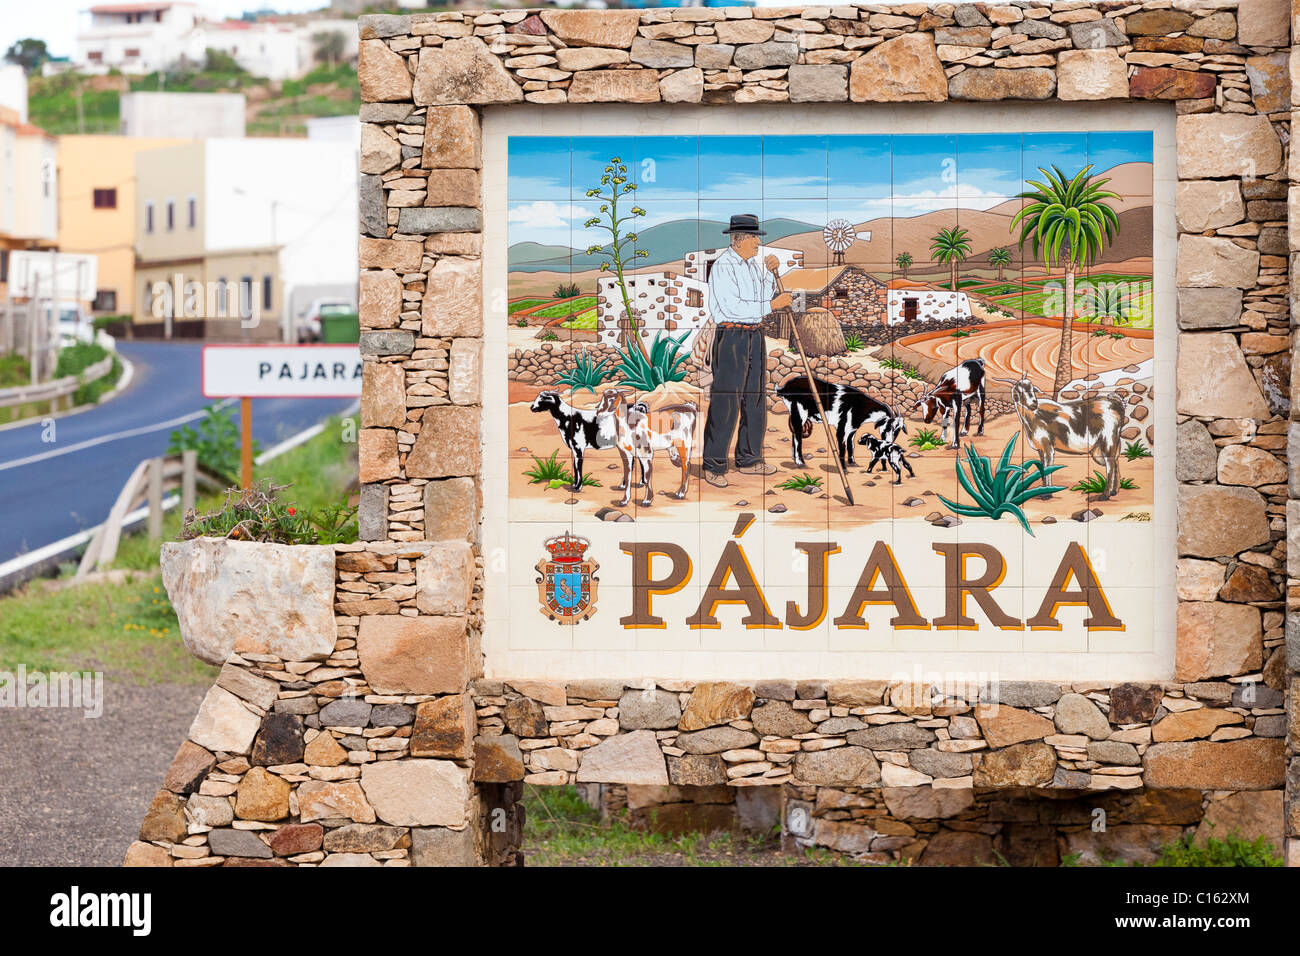 Welcome sign to the town of Pajara on the Canary Island of Fuerteventura - Stock Image